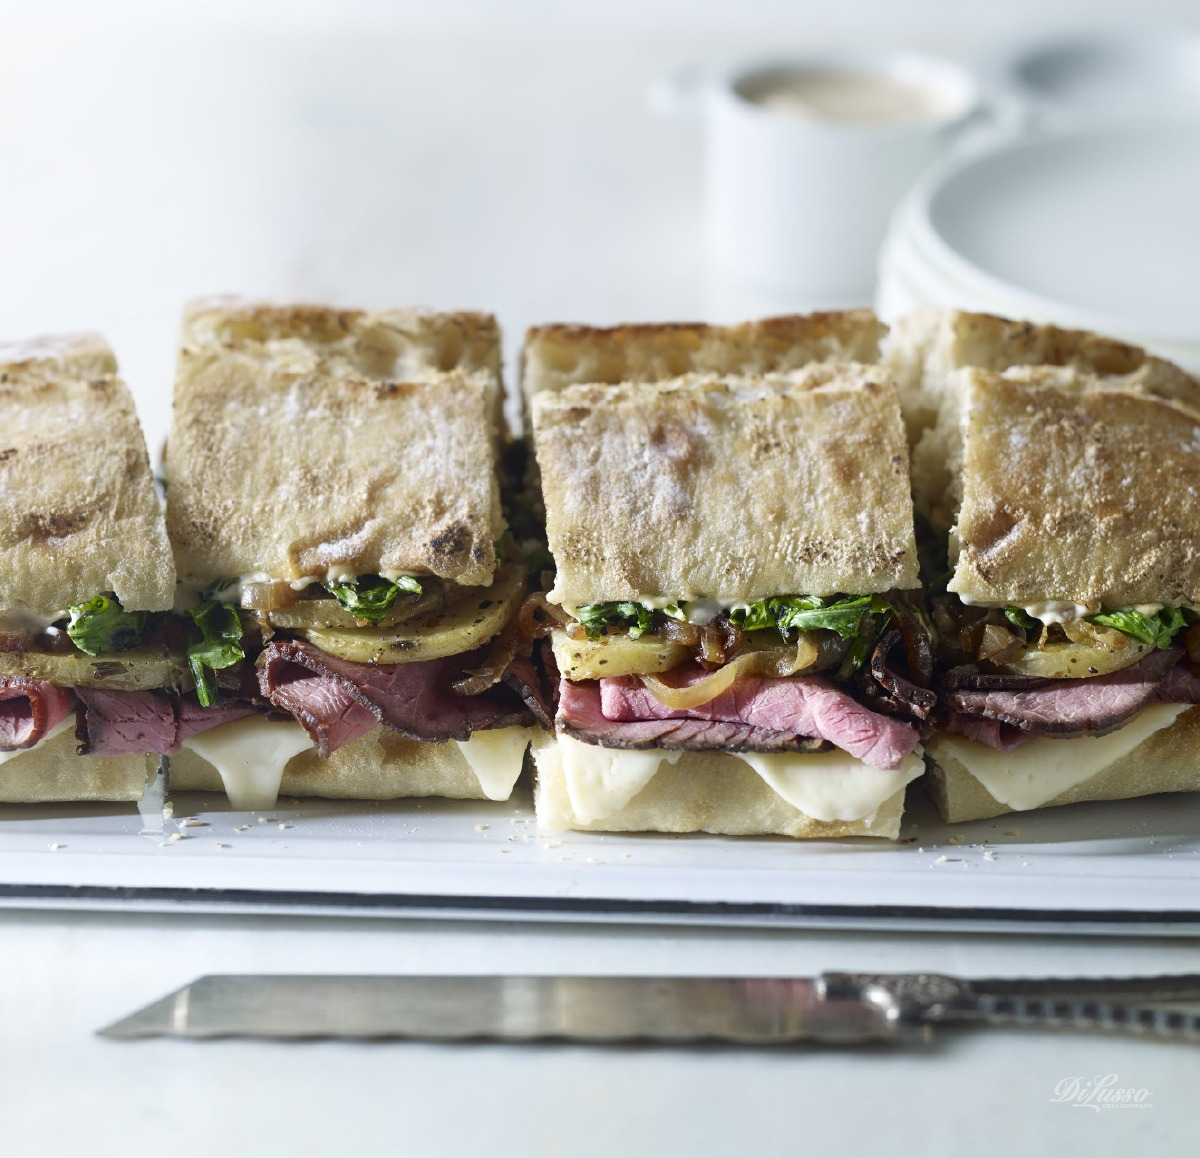 Di Lusso for Dinner: The Family-Size Sandwich